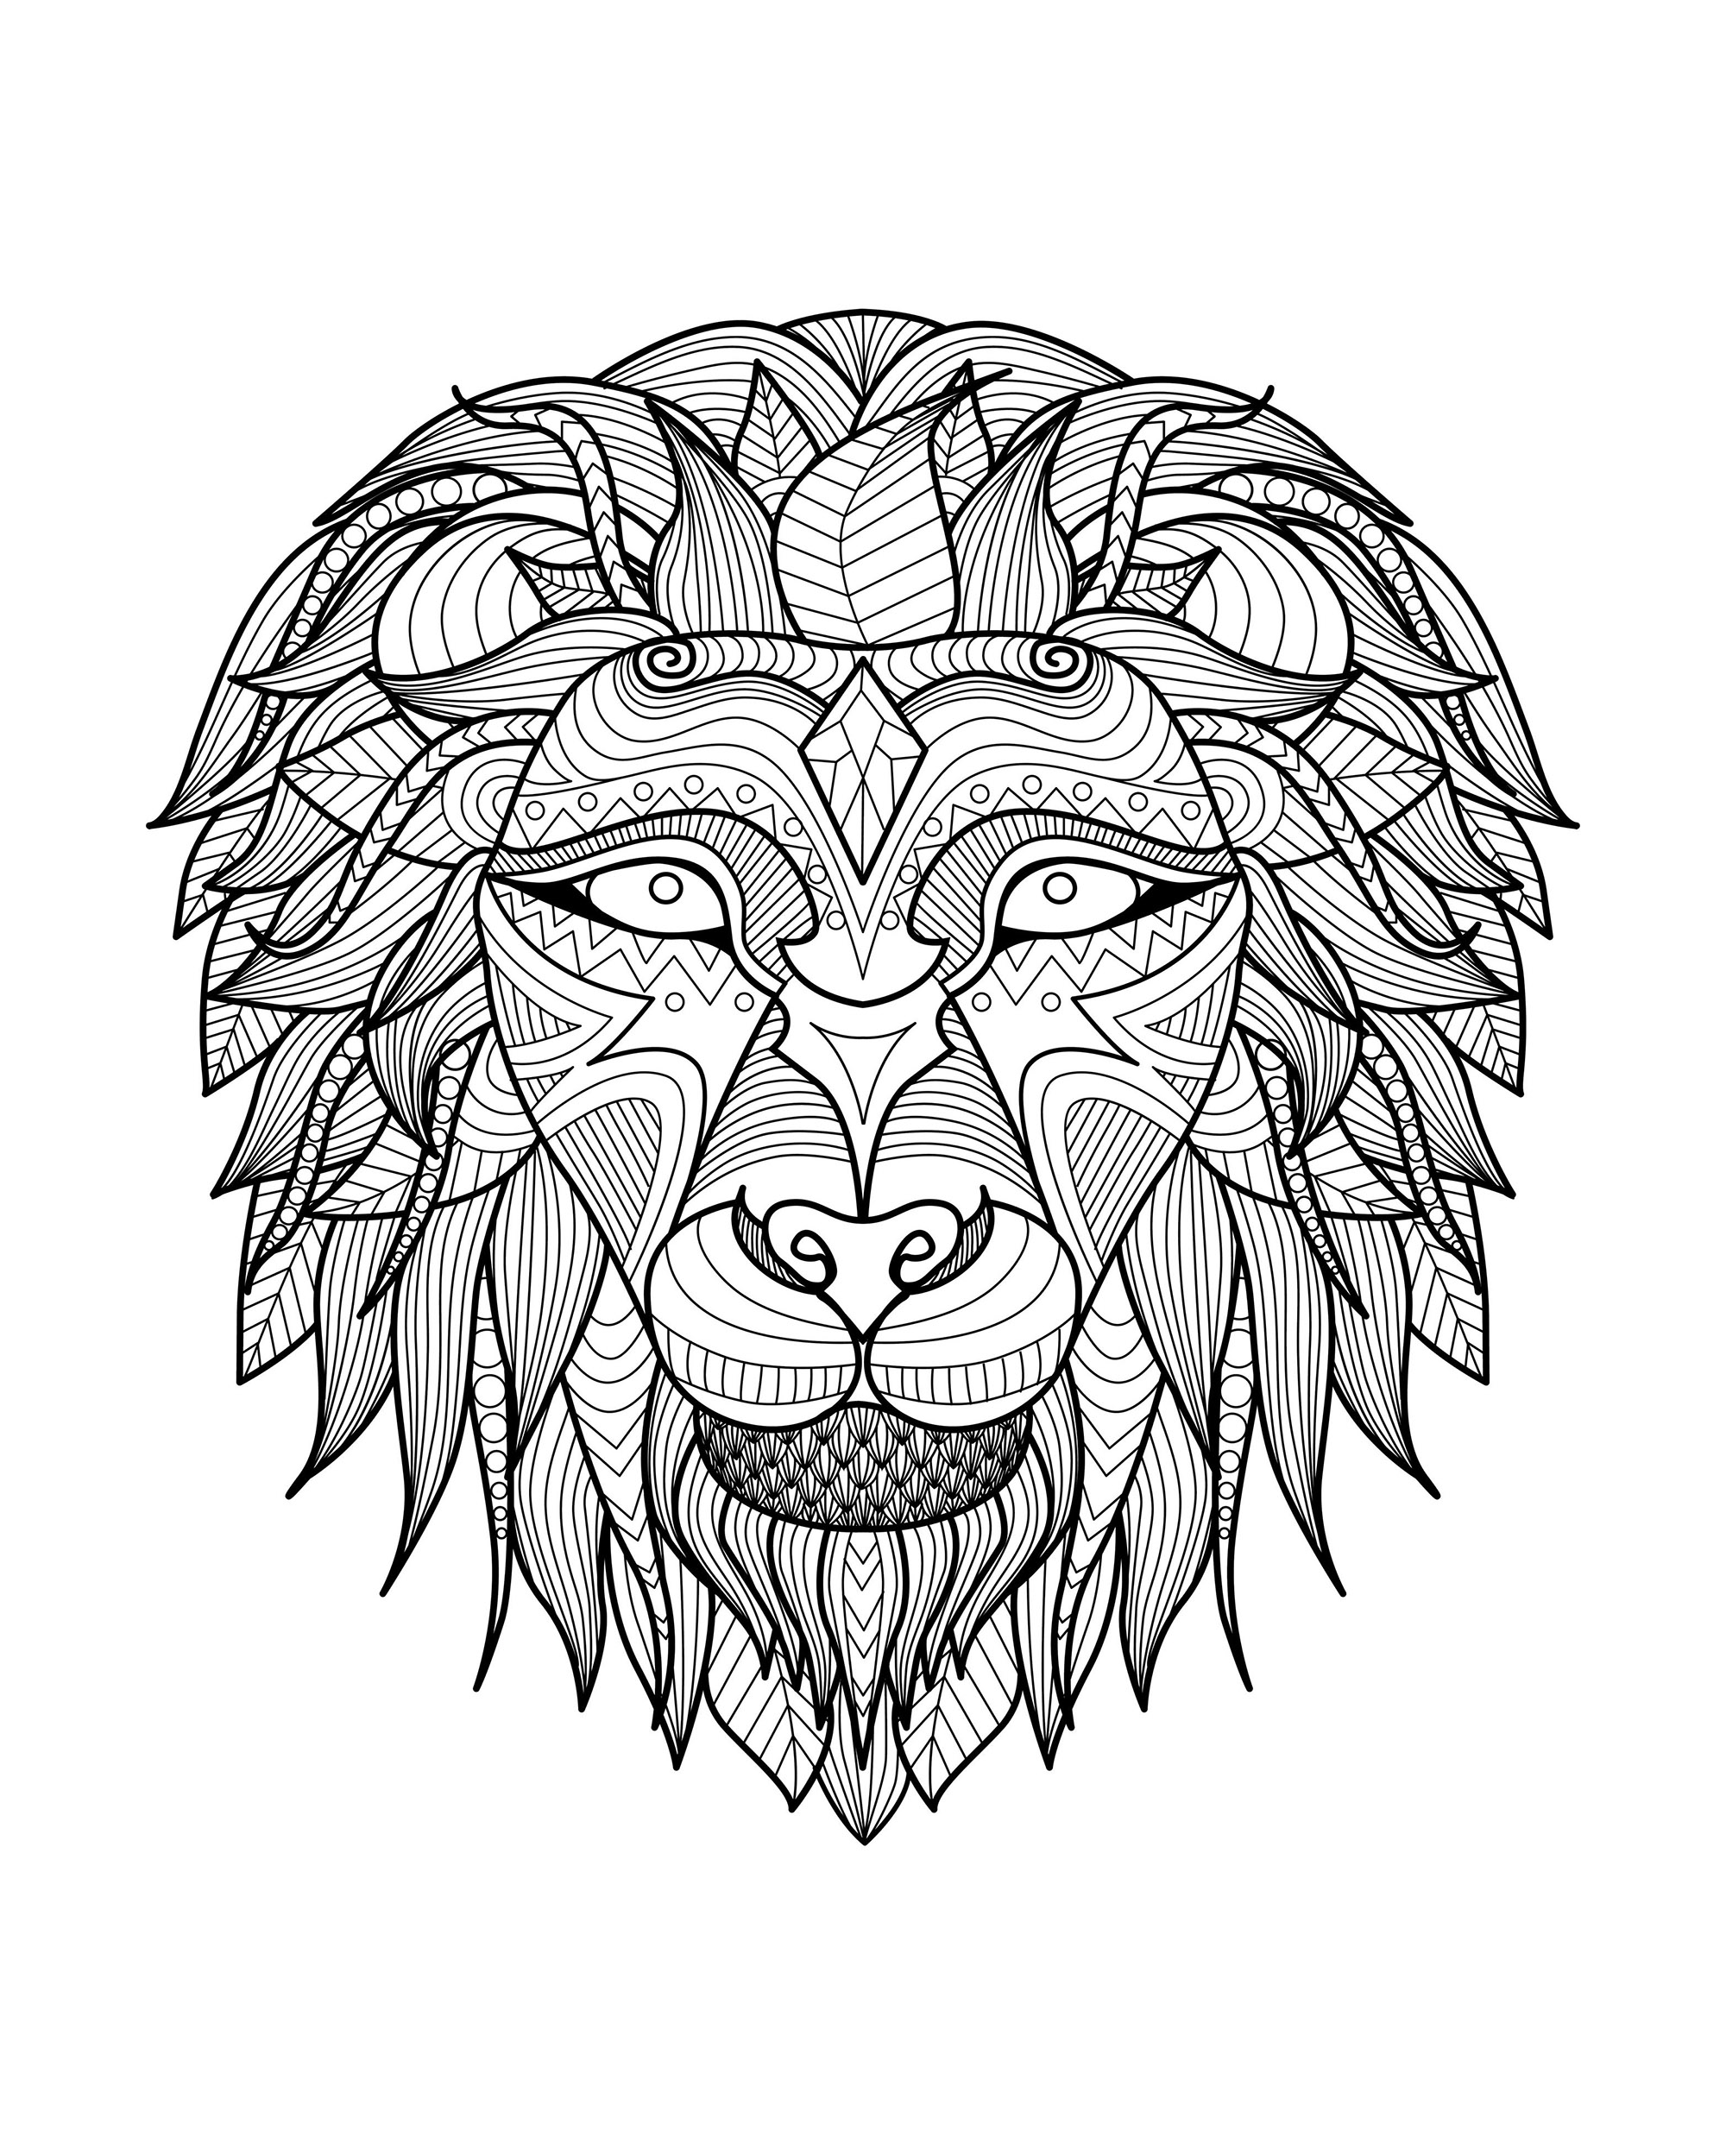 Lion head 2 - Lions Adult Coloring PagesLion Head Coloring Pages For Adults